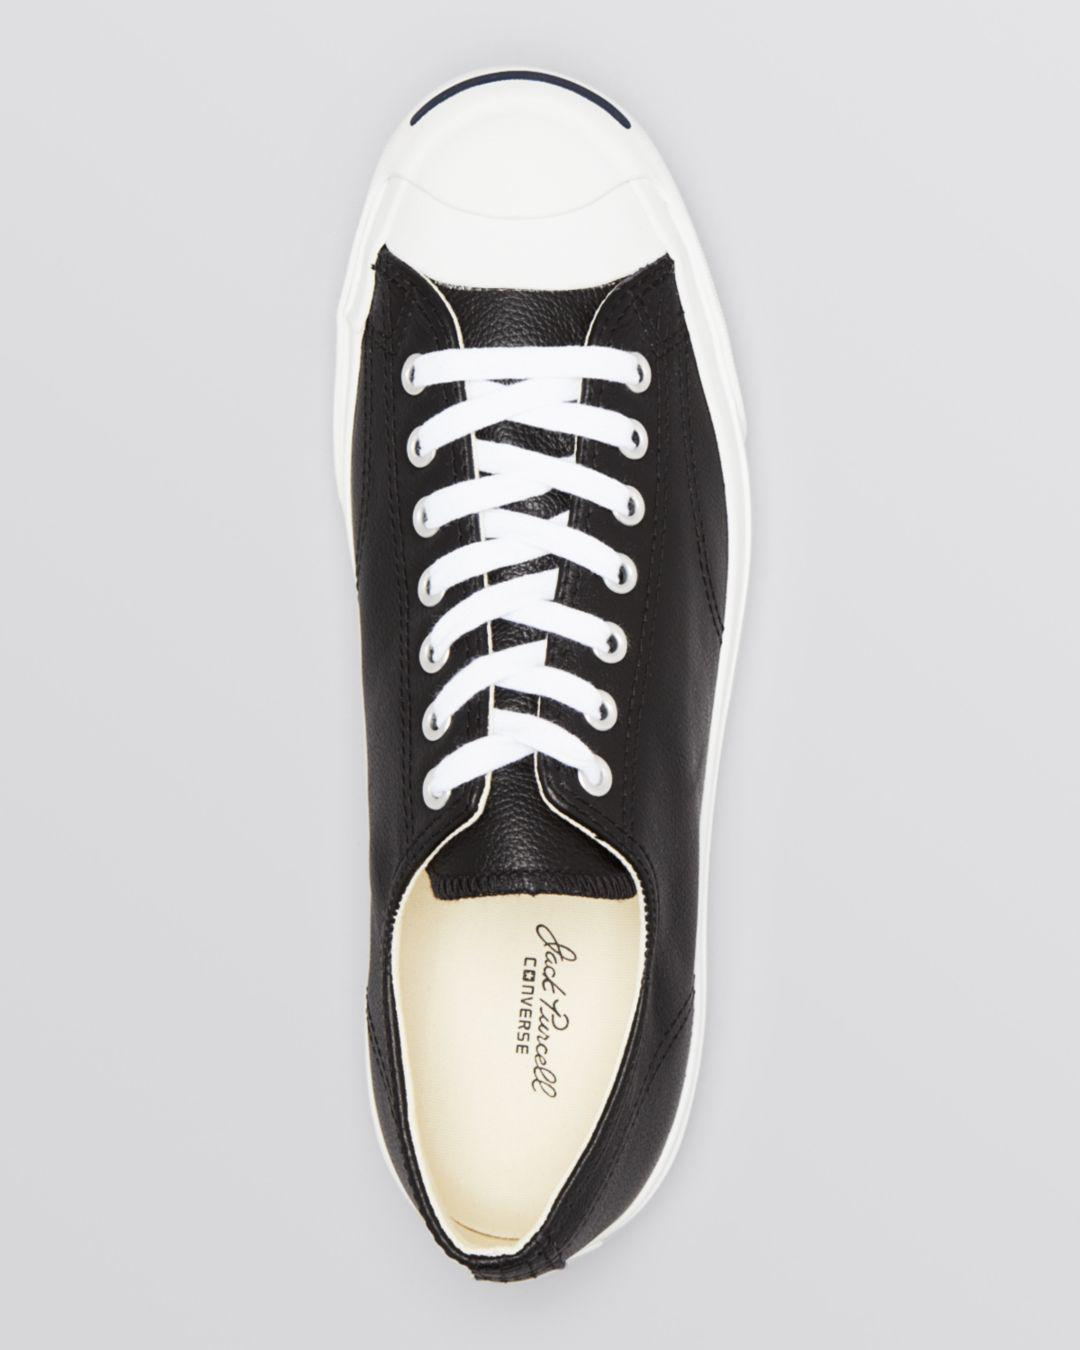 6545d5e08b15 Lyst - Converse  jack Purcell  Sneaker in Black for Men - Save 43%